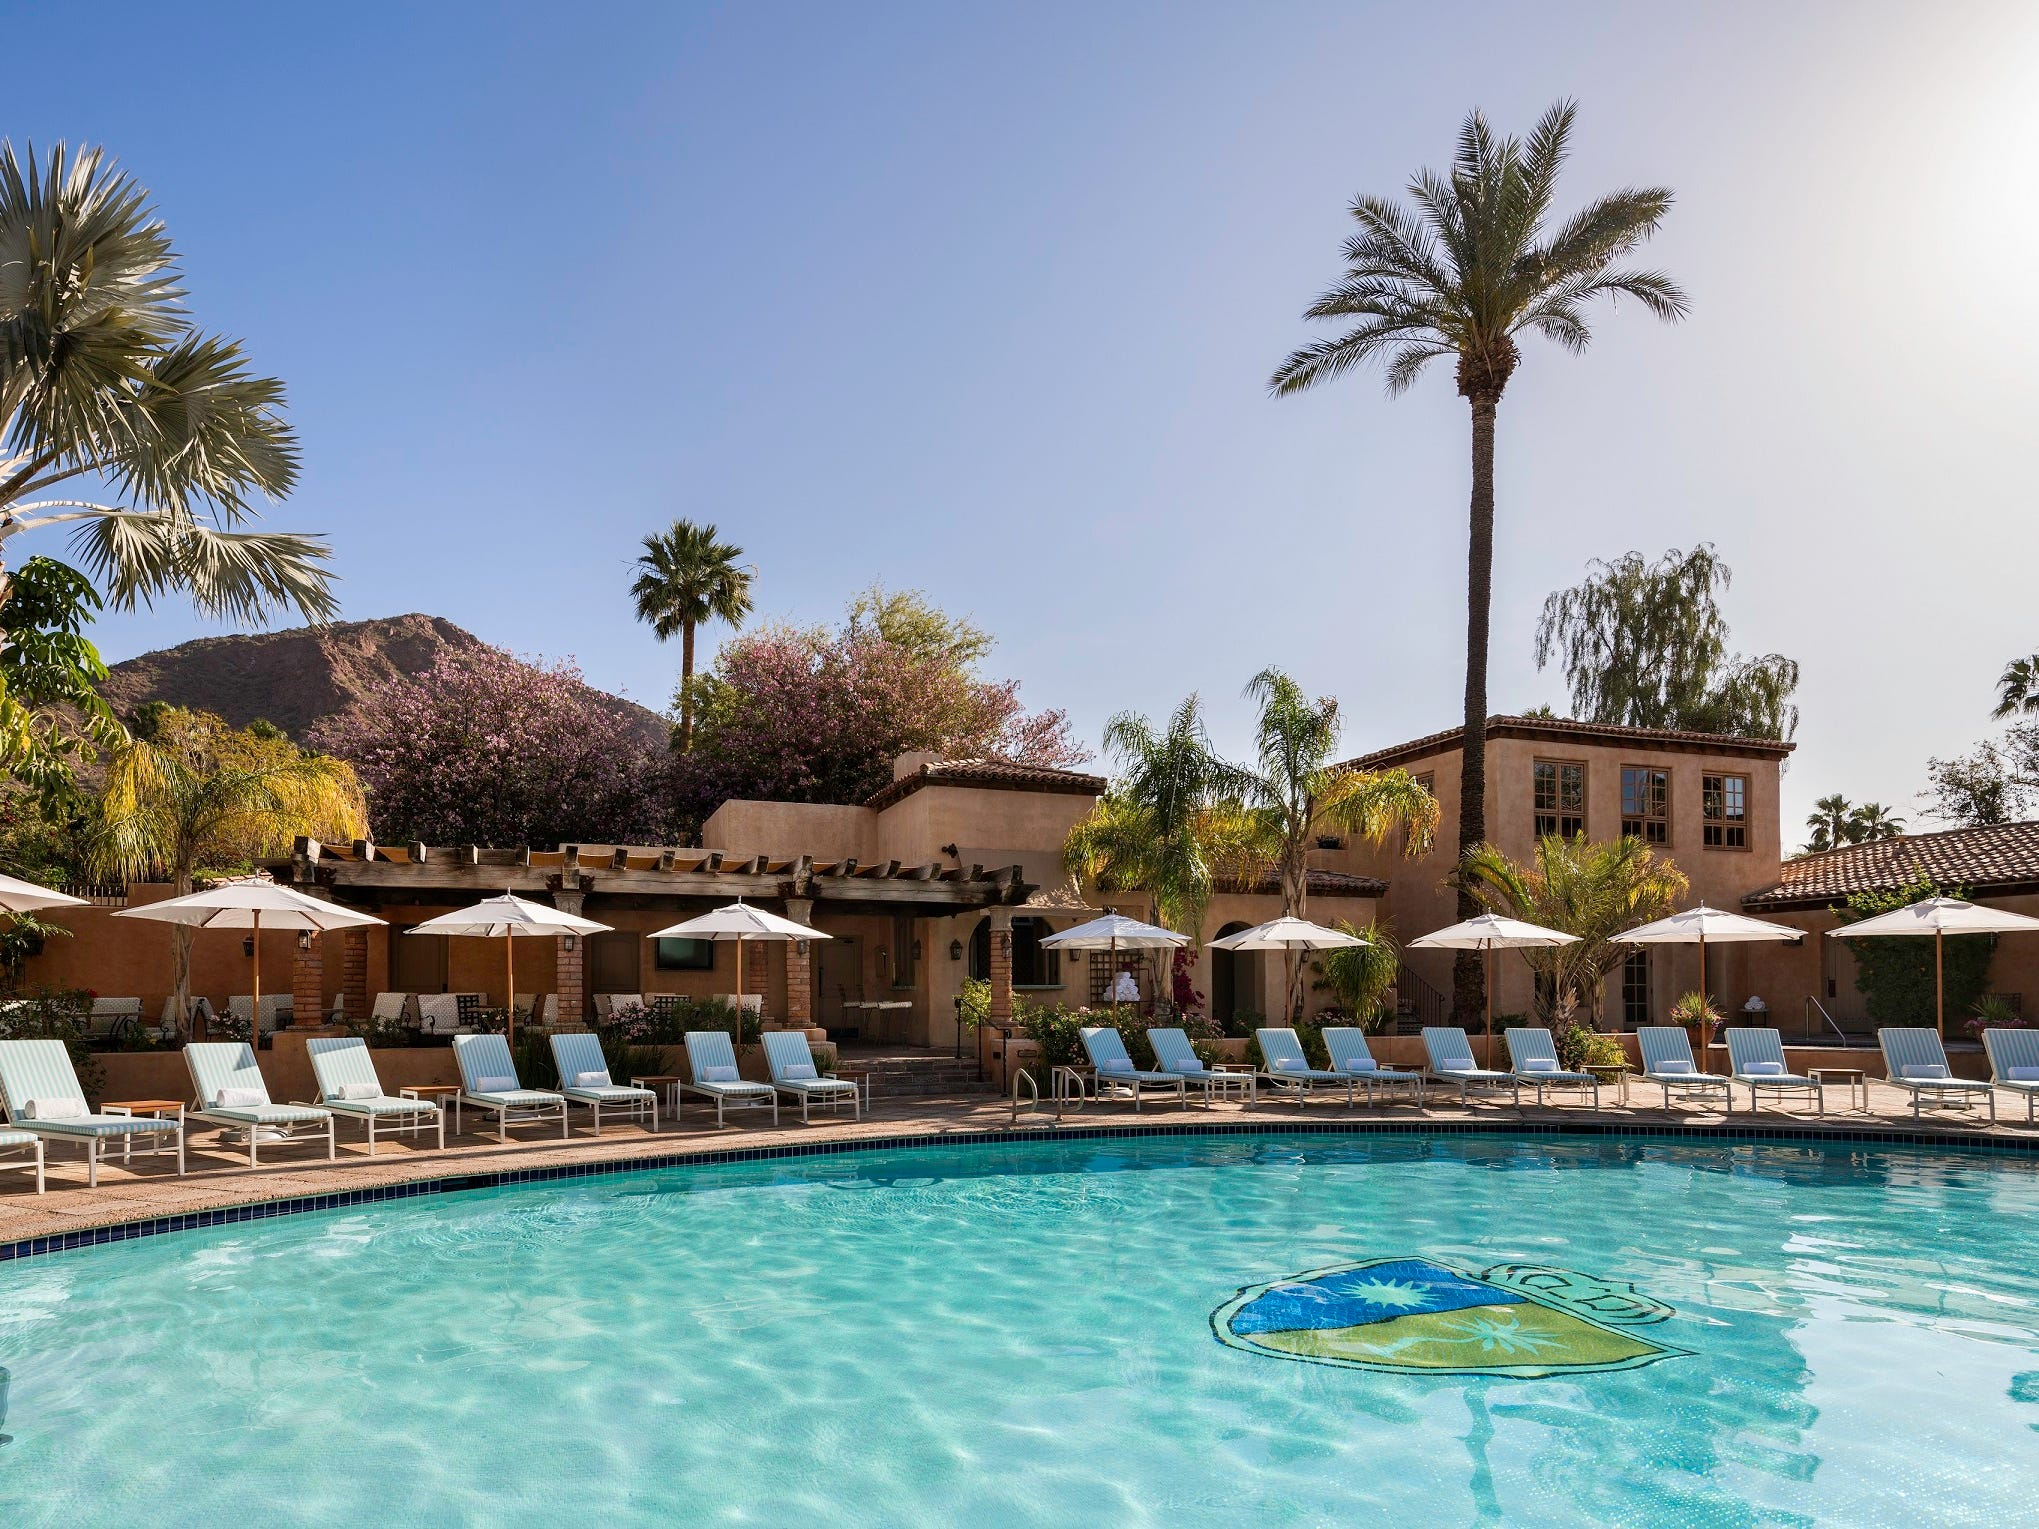 Royal Palms, Phoenix |   Deal: Rates starting at $199.  Activities: Movie at the pool at 8 p.m. Saturday, bingo at the pool all weekend, lawn games and complimentary yoga and tai chi.   Details: 602-283-1234, royalpalmshotel.com.